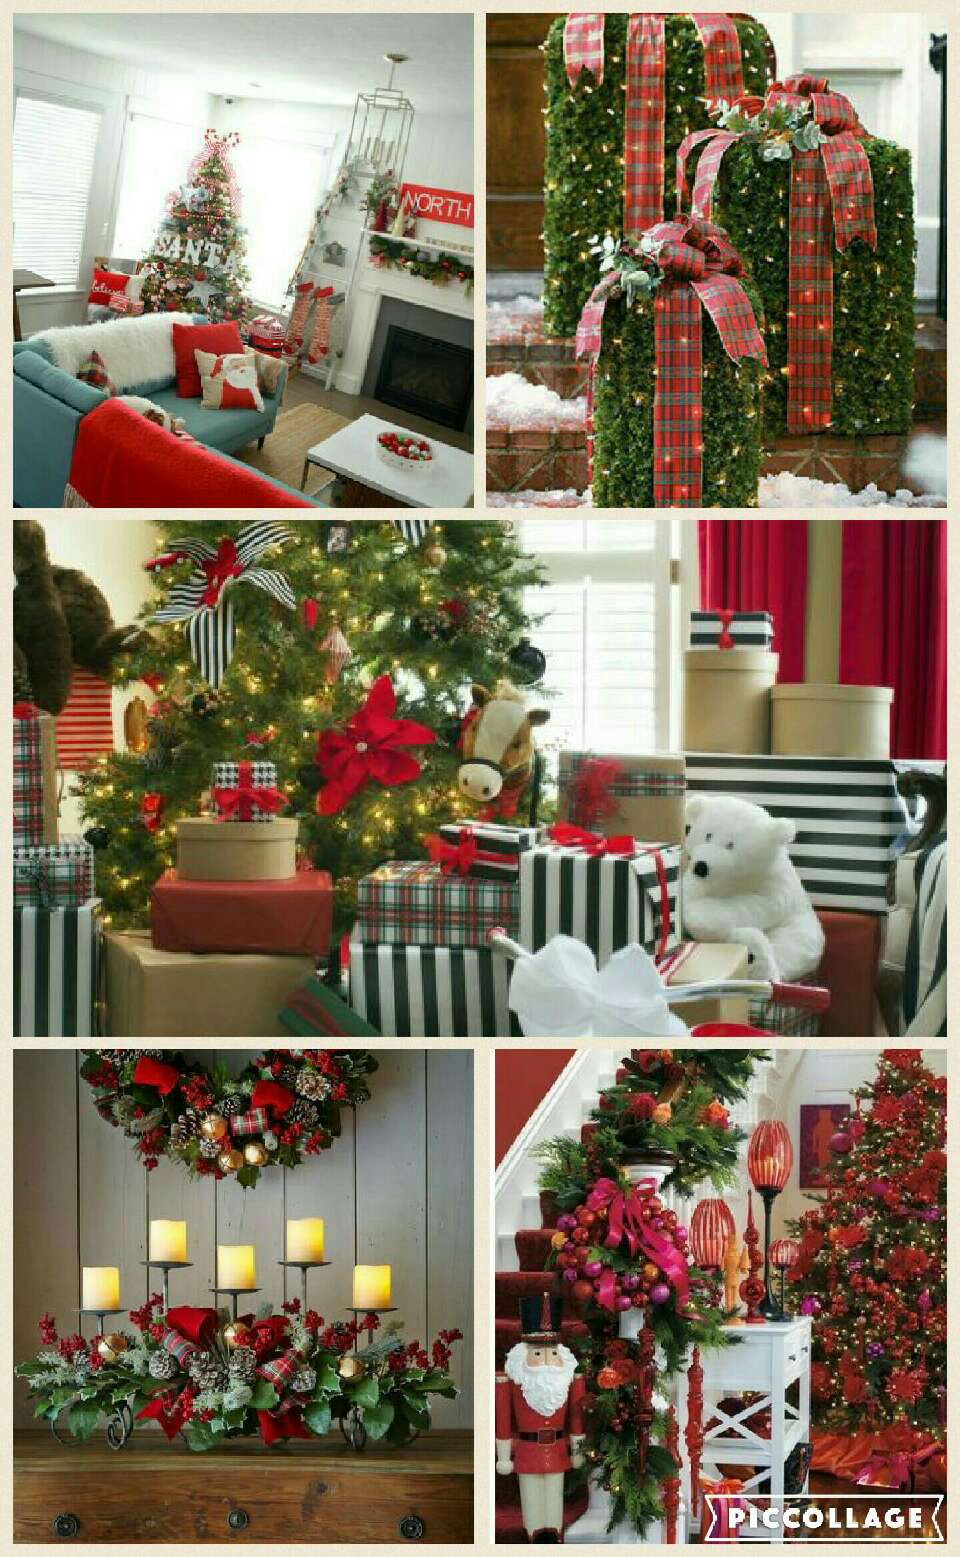 Pretty Christmas Decor in Red and Green.